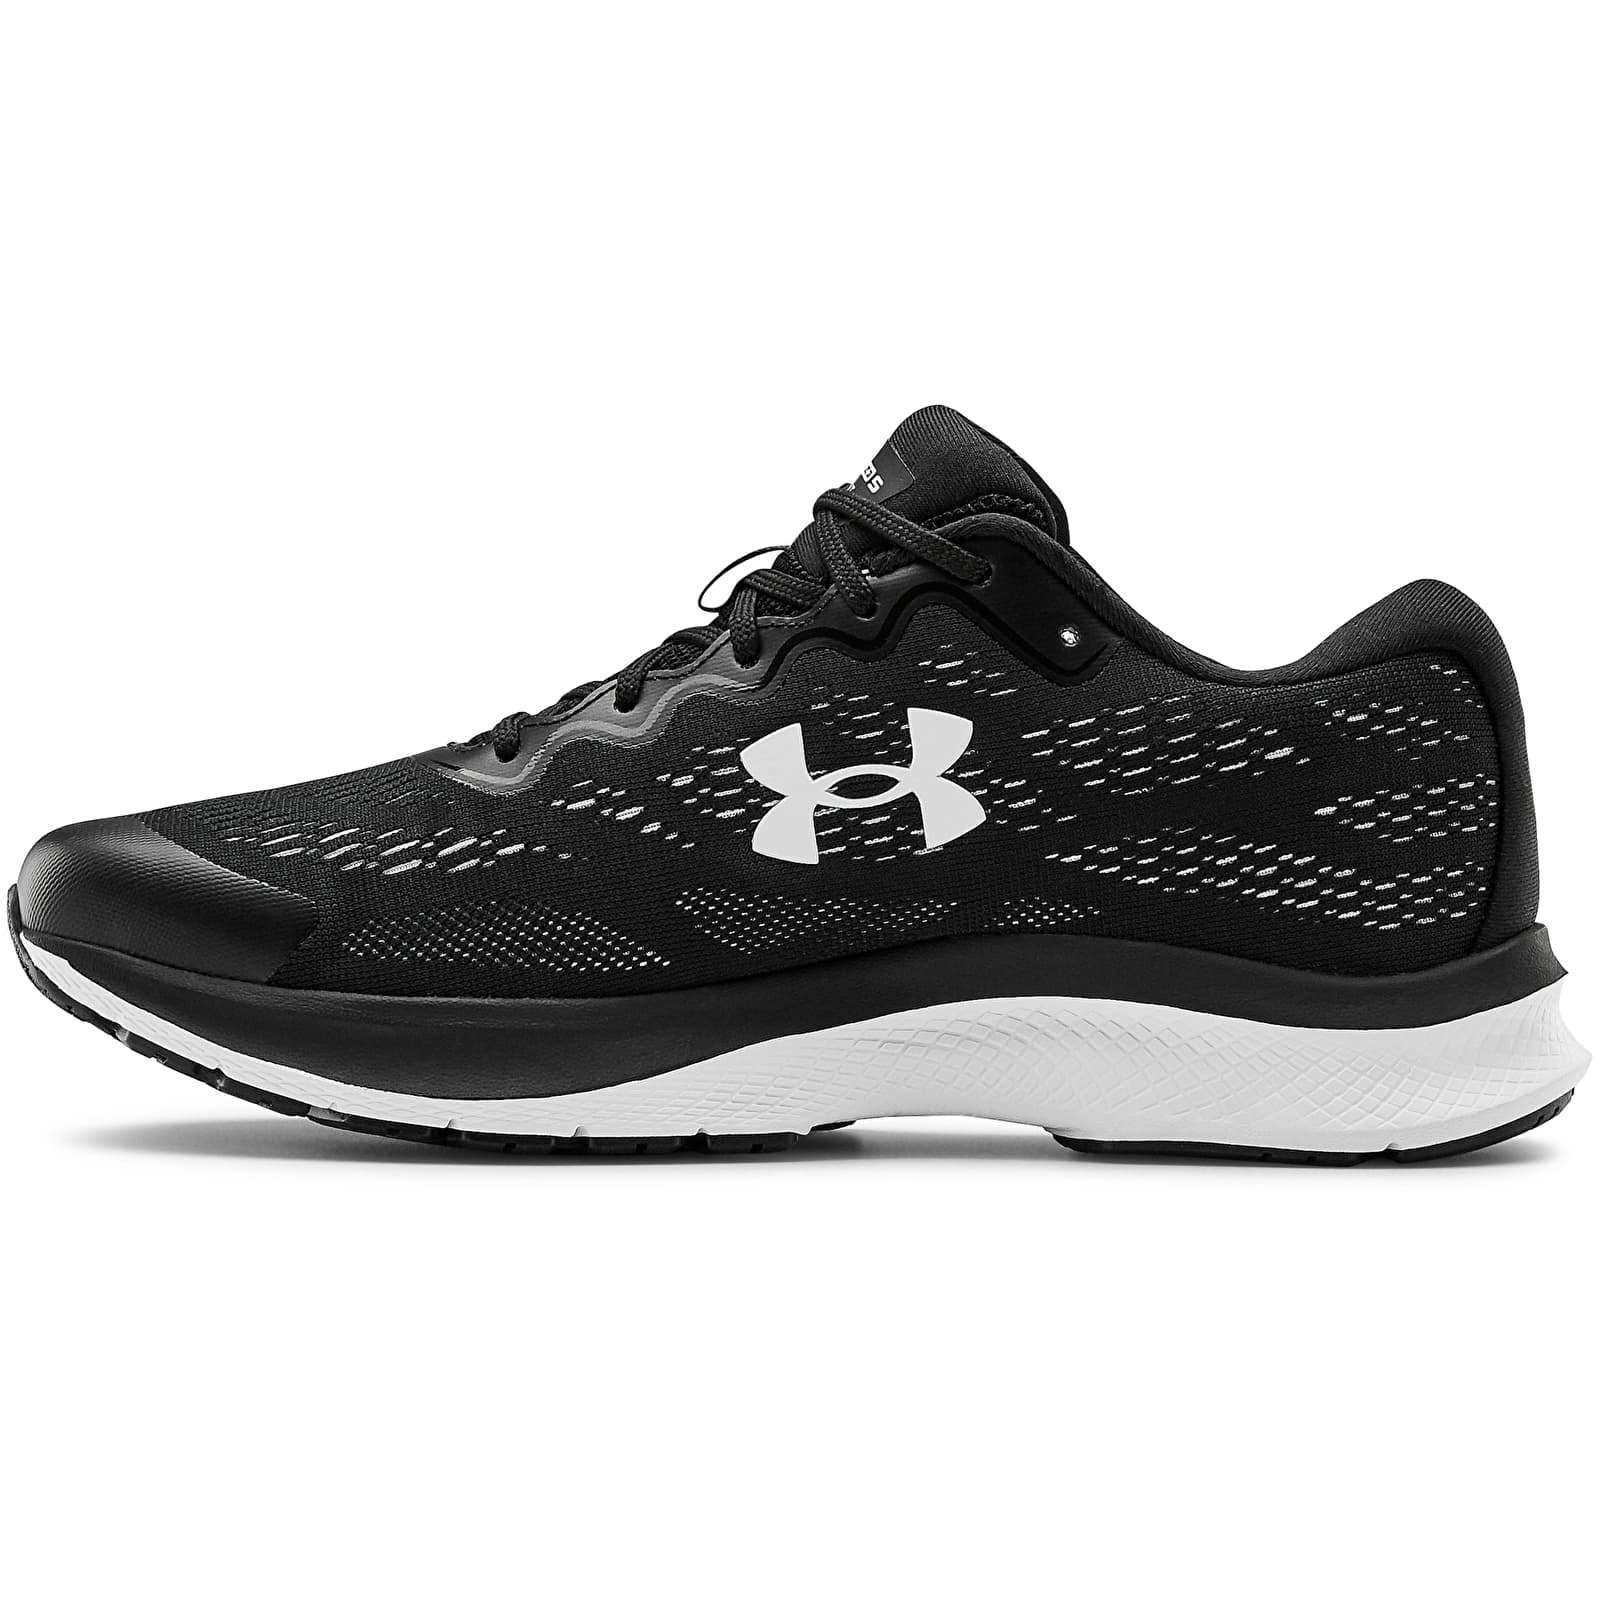 Under Armour W Charged Bandit 6 Black 3023023-001